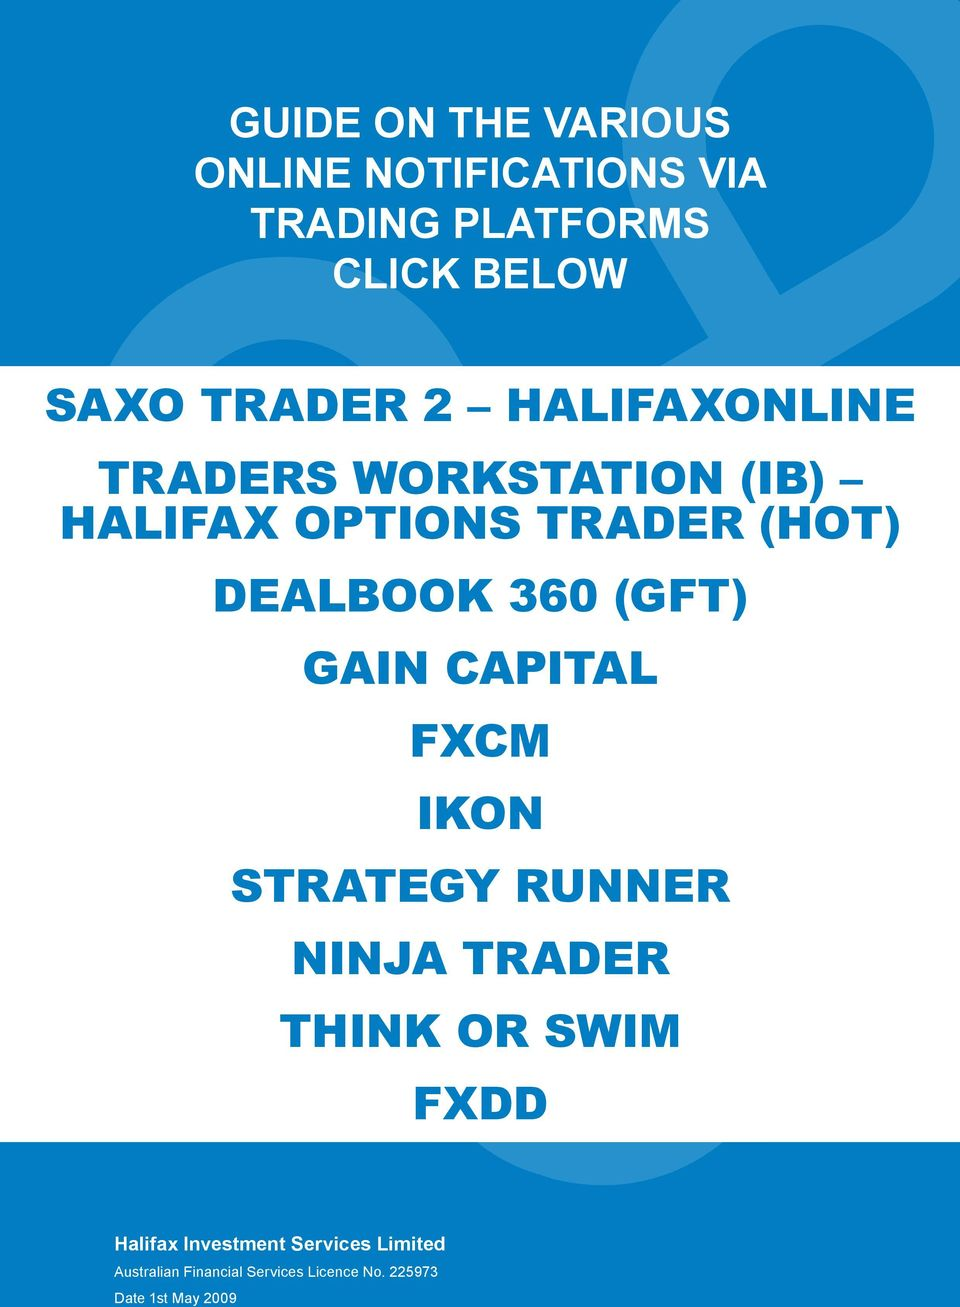 360 (GFT) GAIN CApITAL FXCM IkON STRATEGy RuNNER NINjA TRADER THINk OR SWIM FXDD halifax investment services